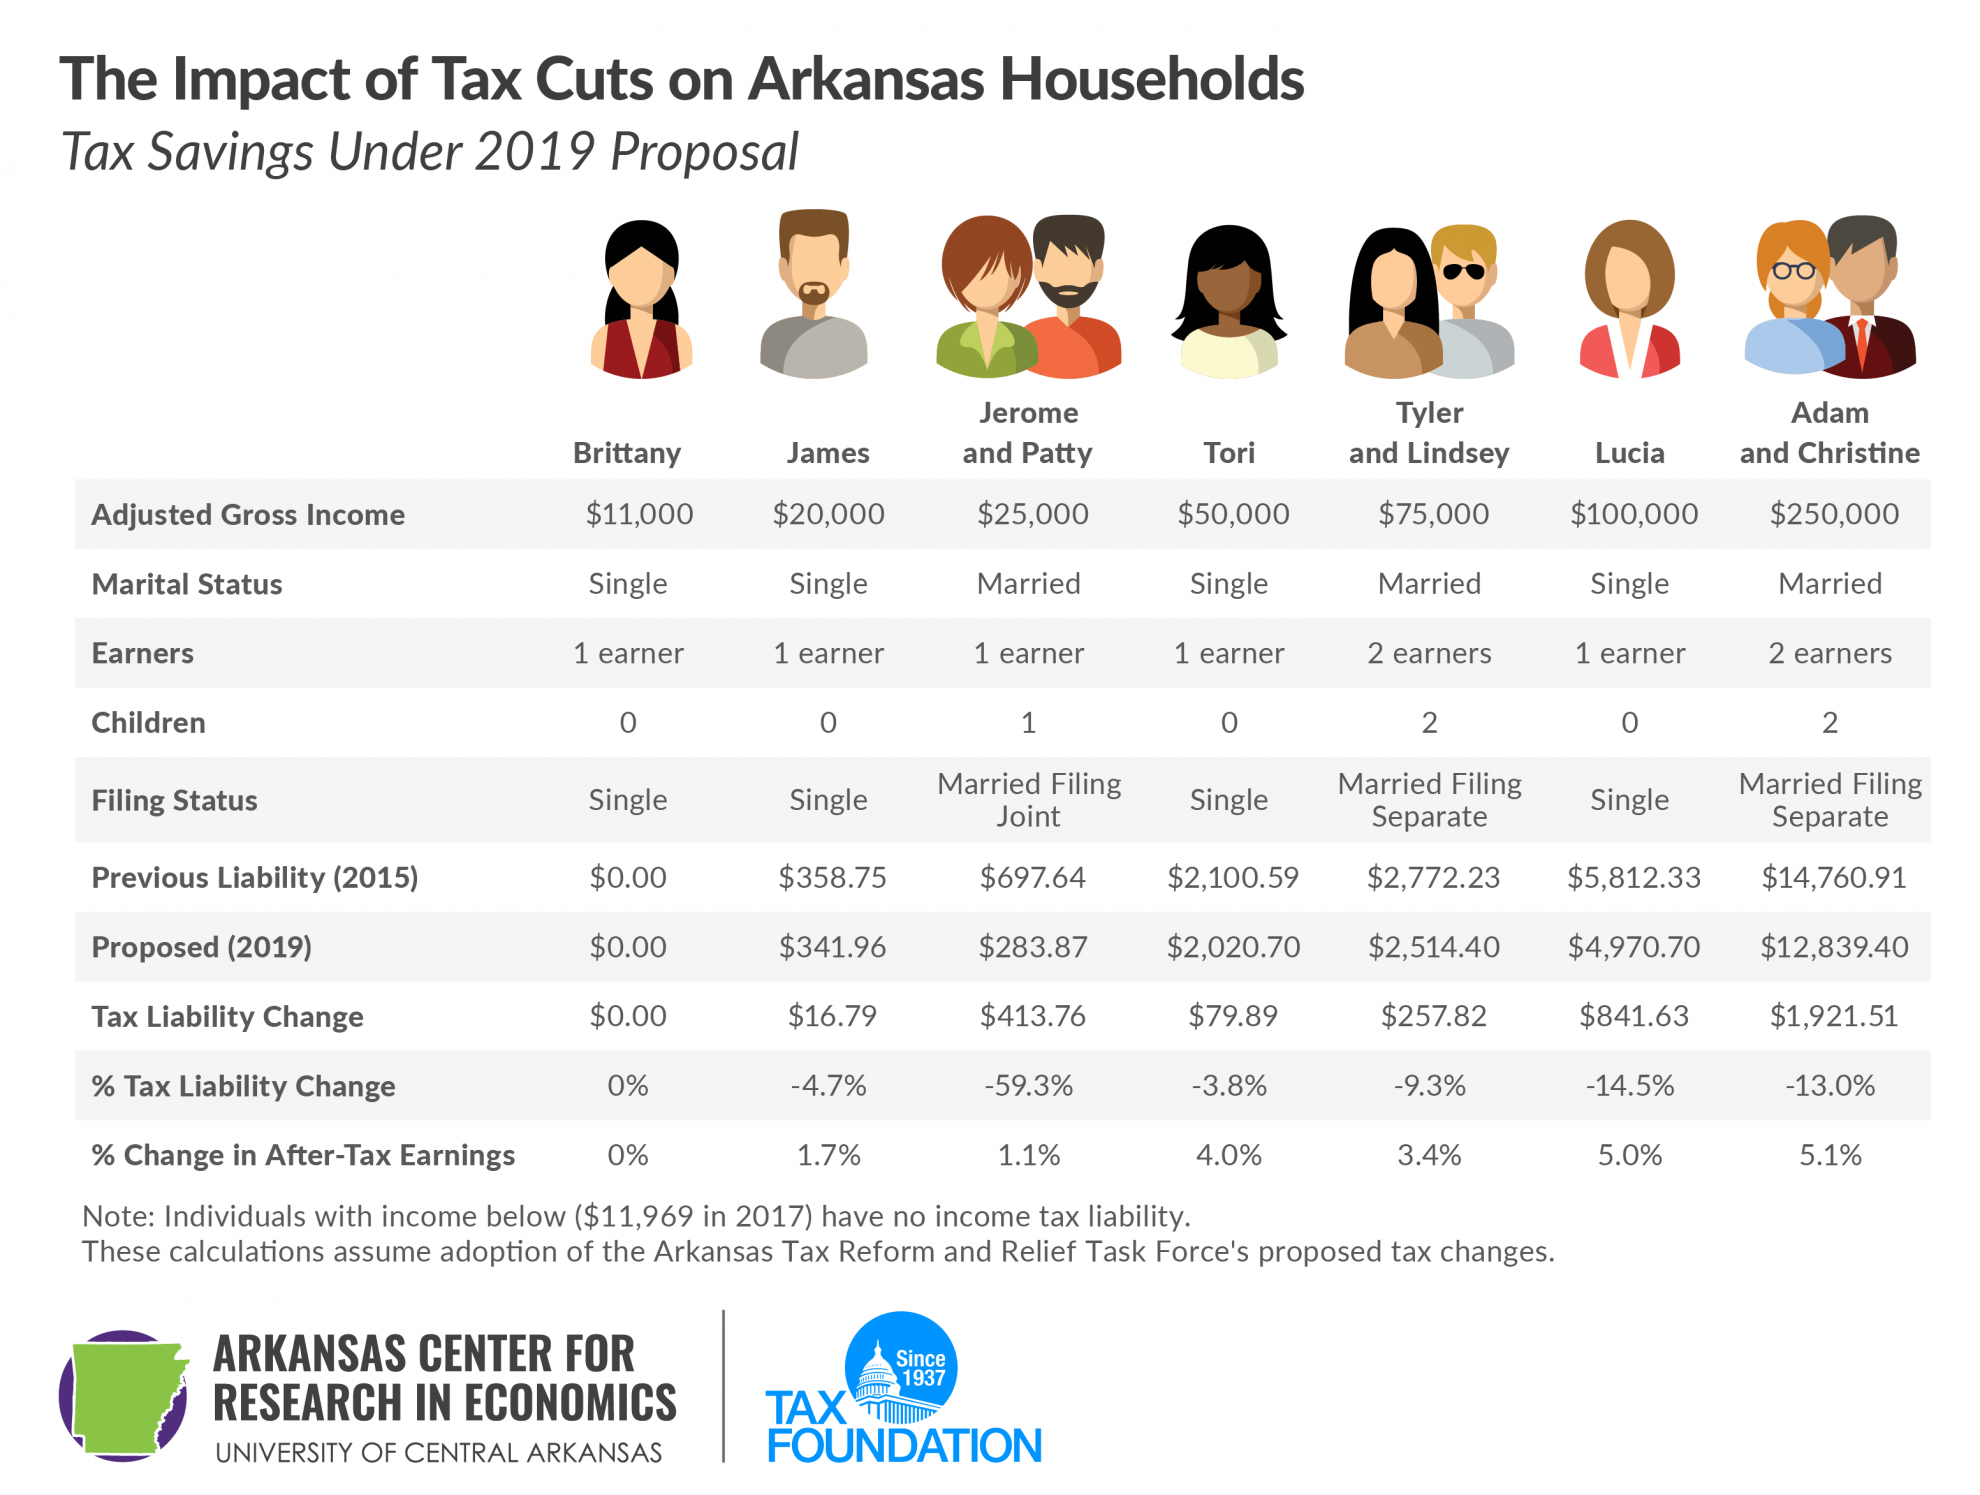 Impact of Tax Cuts on Arkansas households, tax savings under 2019 Arkansas tax reform. Arkansas tax cuts